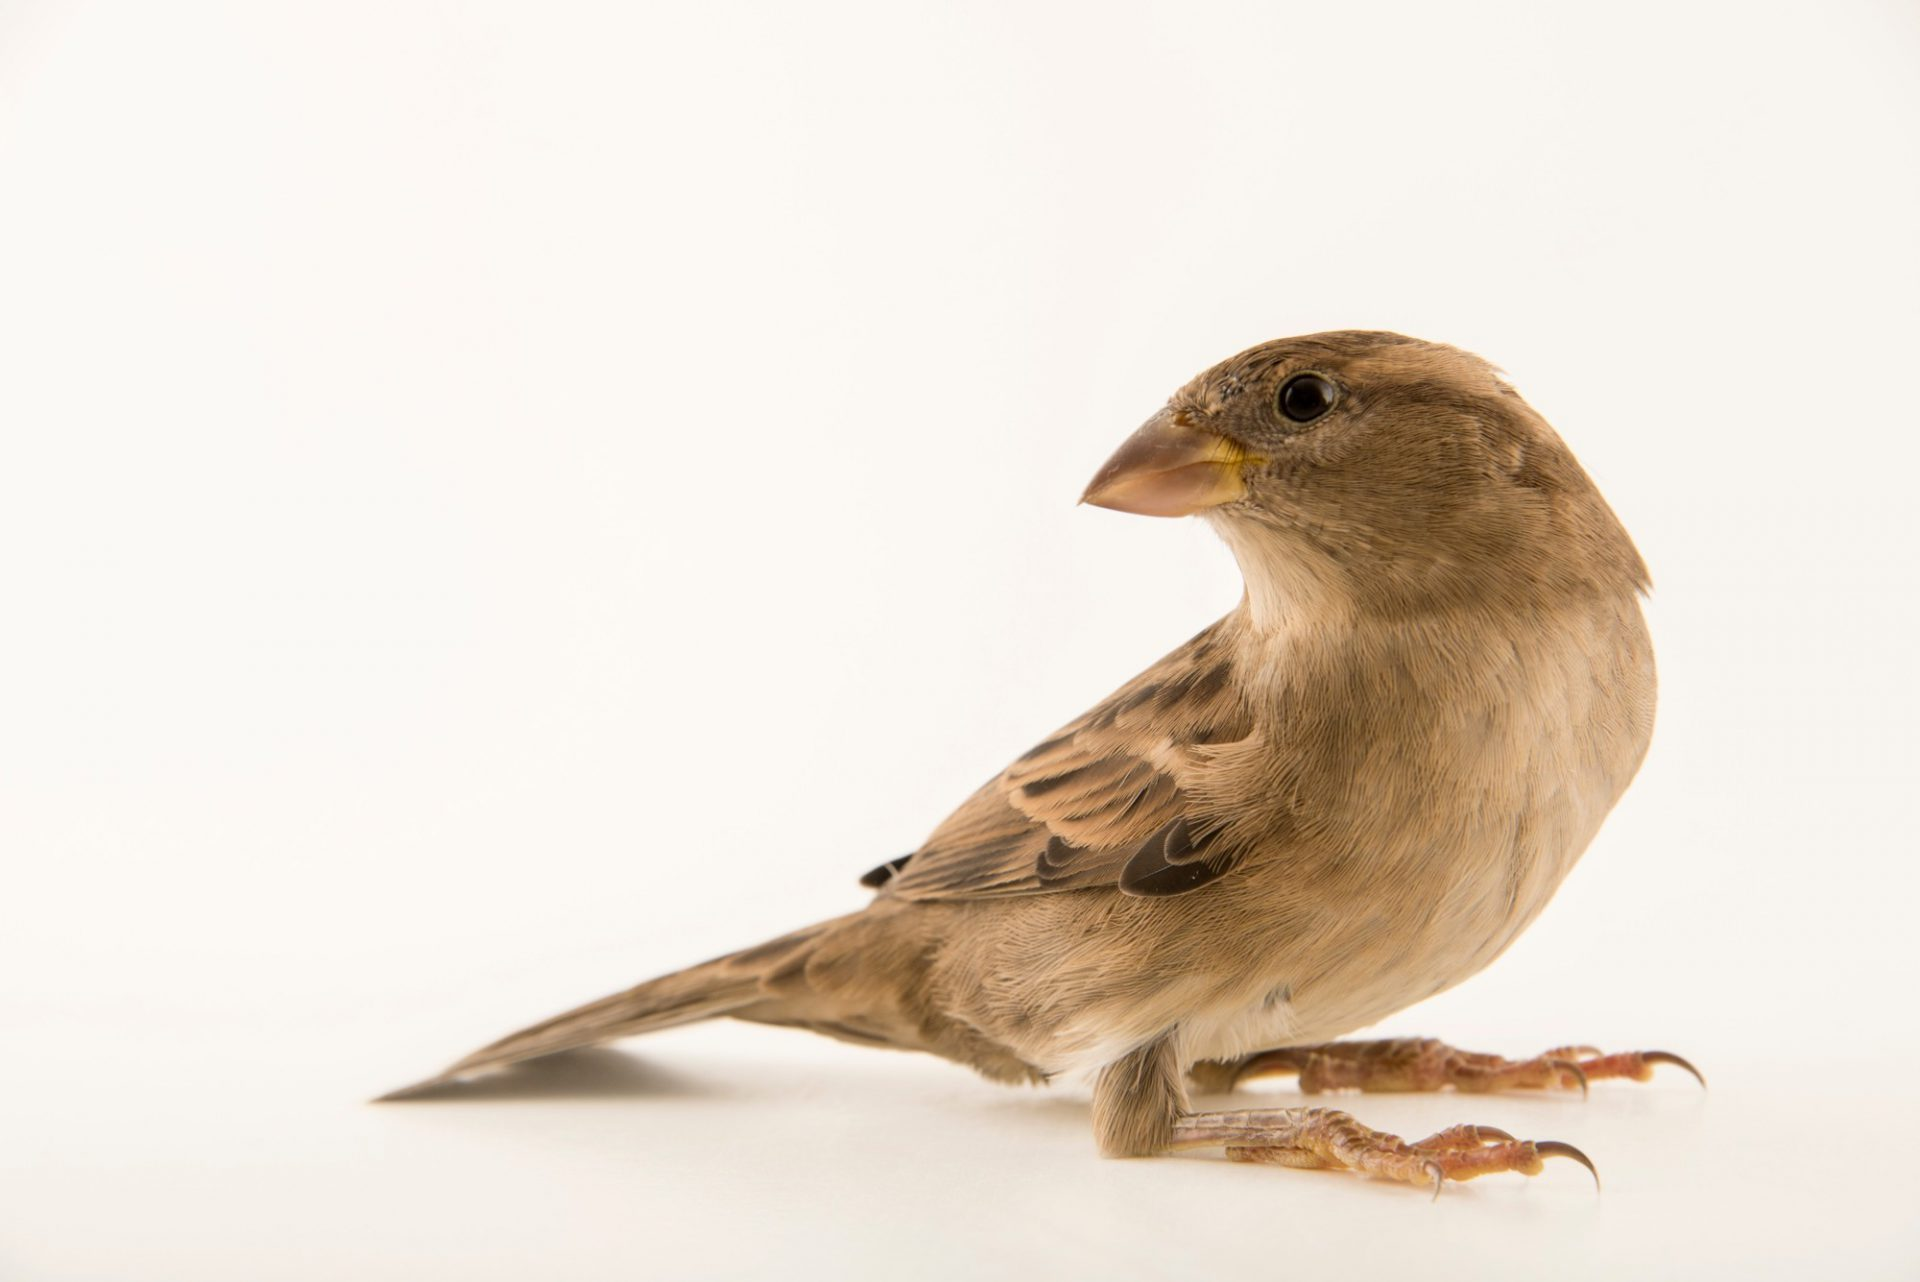 Photo: A female house sparrow (Passer domesticus balearoibericus) at the Wildlife Rescue Center of Rome (LIPU).